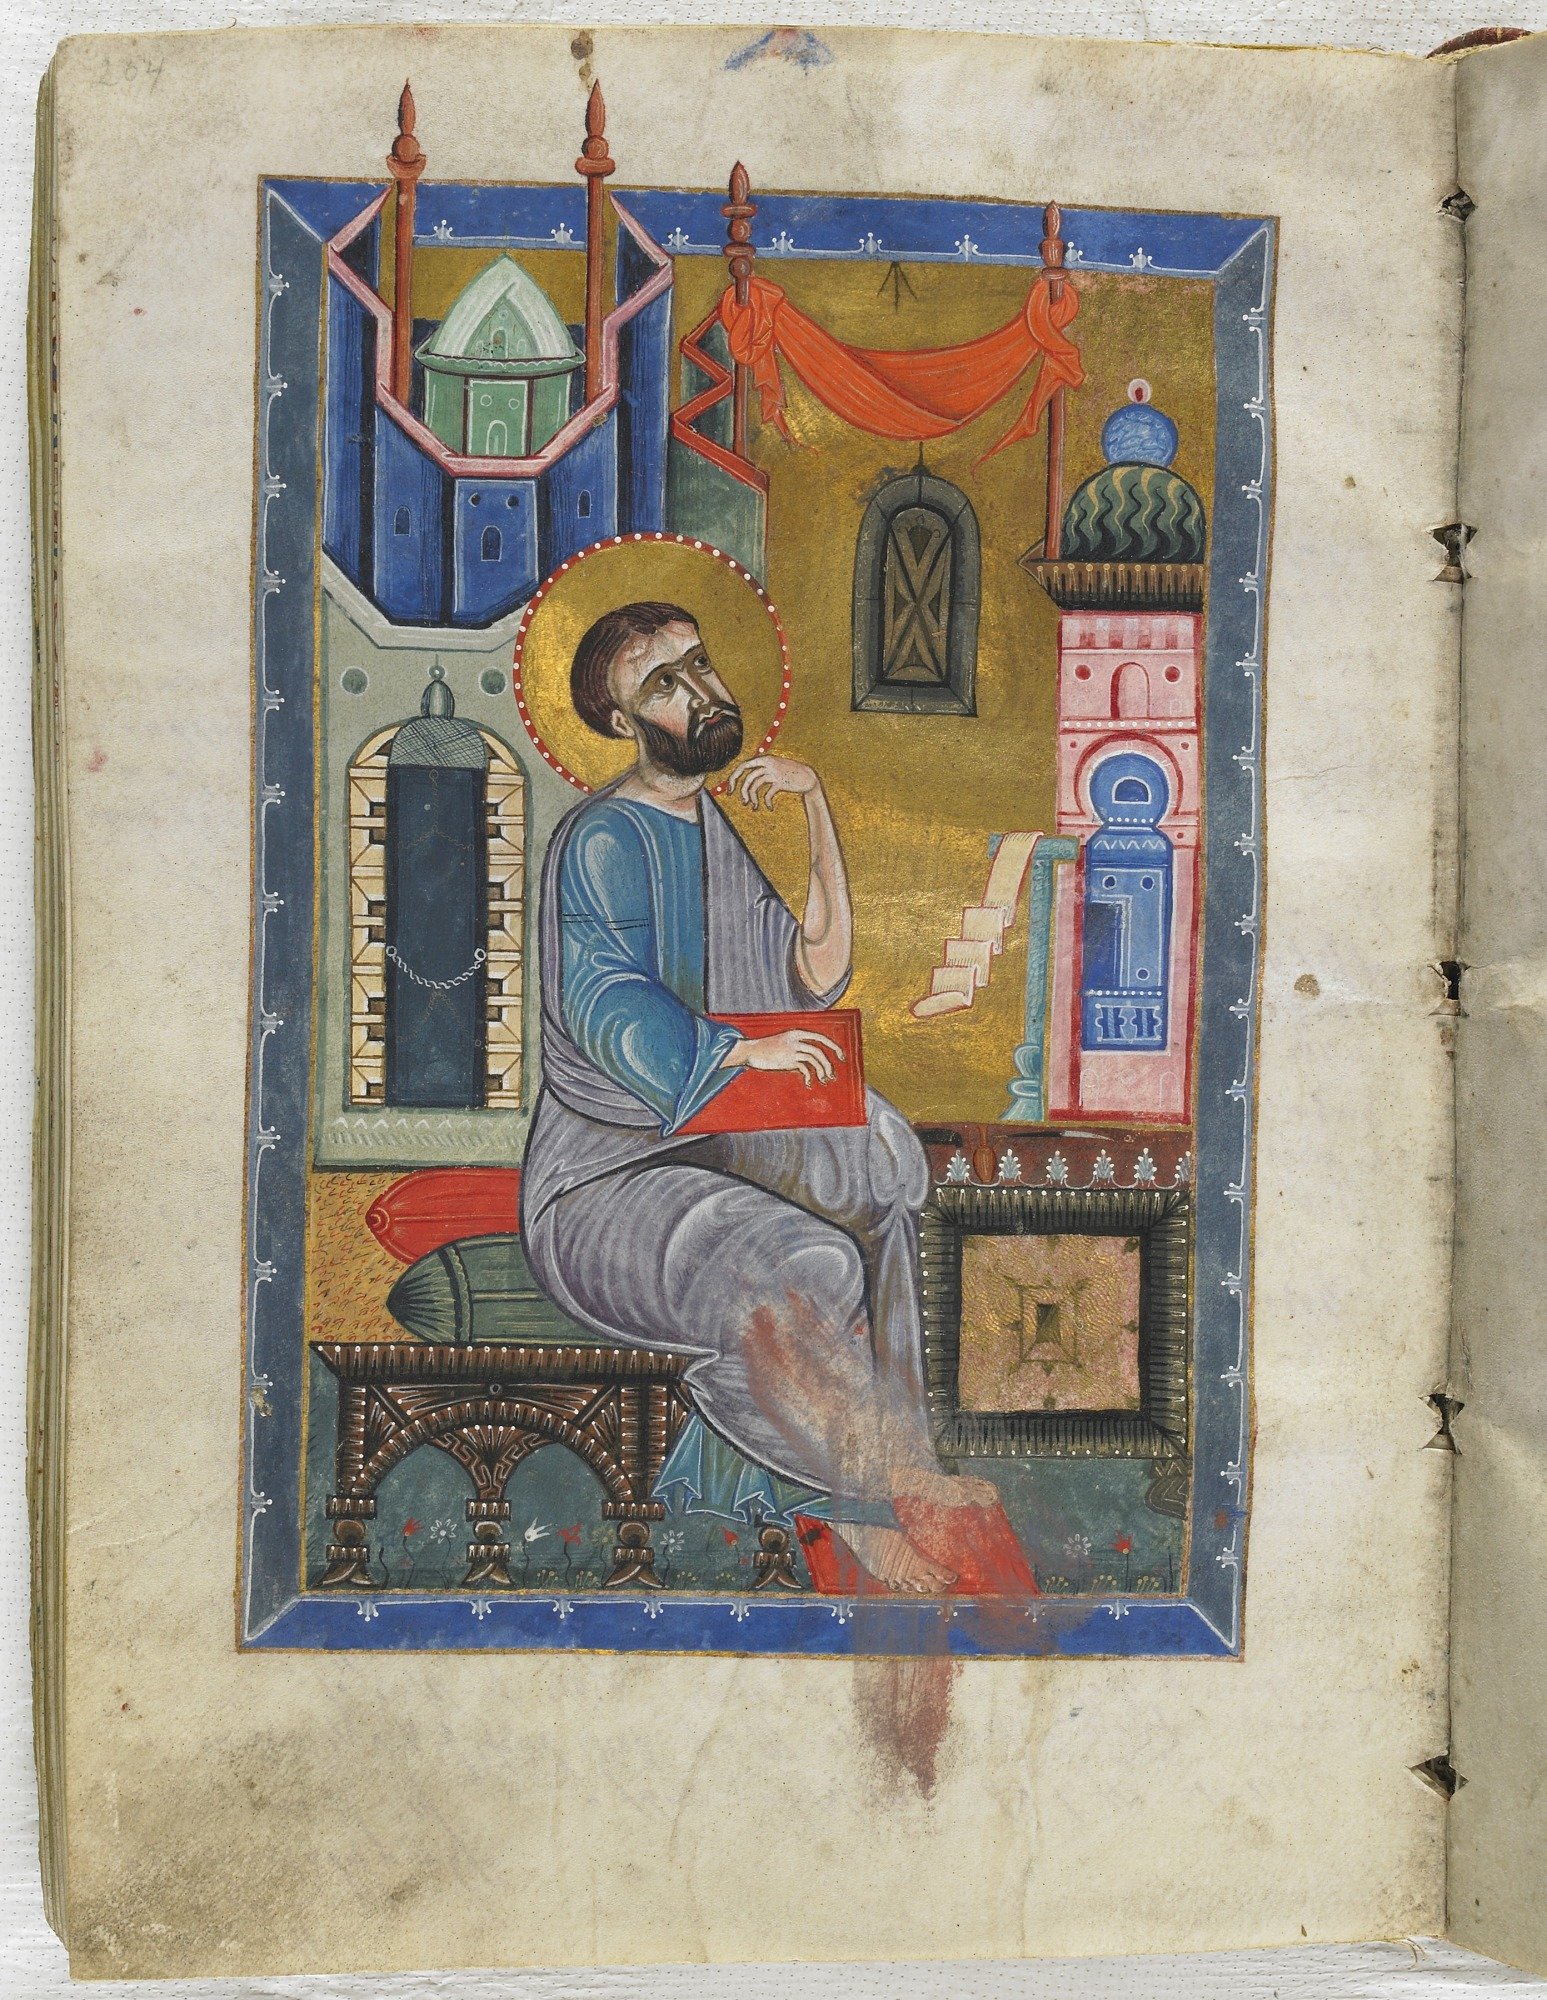 folio 204: The Gospel according to the Four Evangelists